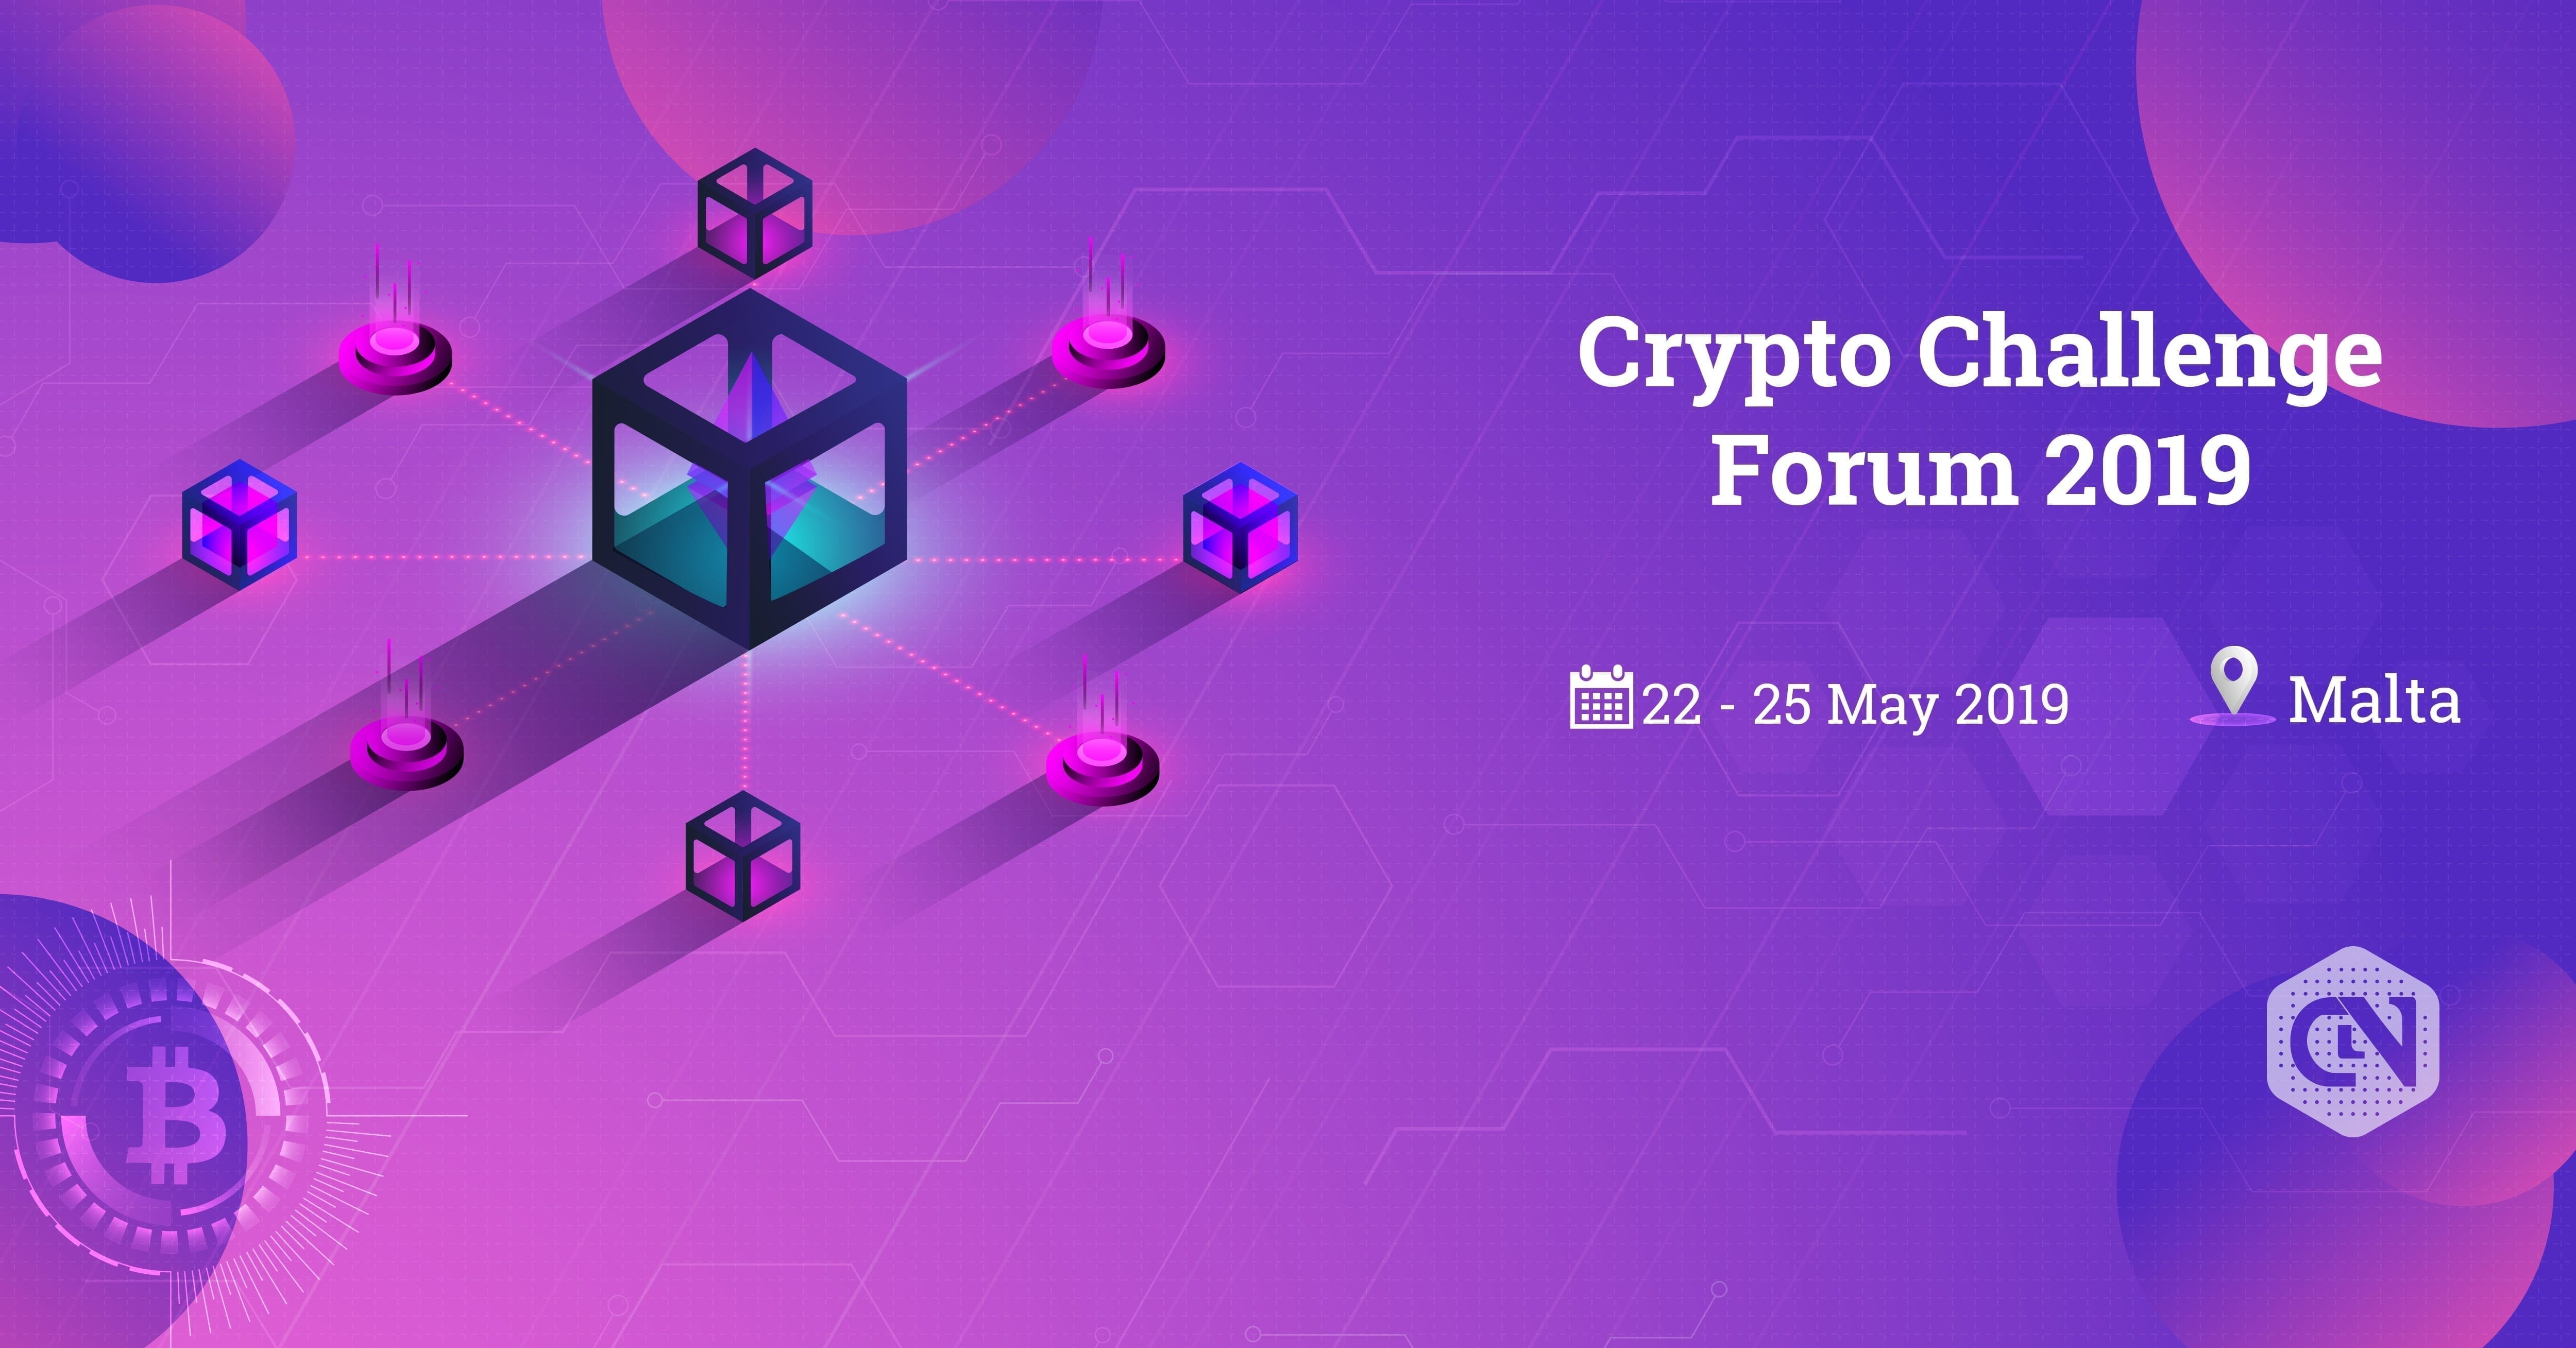 Crypto Challenge Forum, Malta, event, conference, summit, bitcoin, blockchain, crypto, cryptocurrency, may, 2019